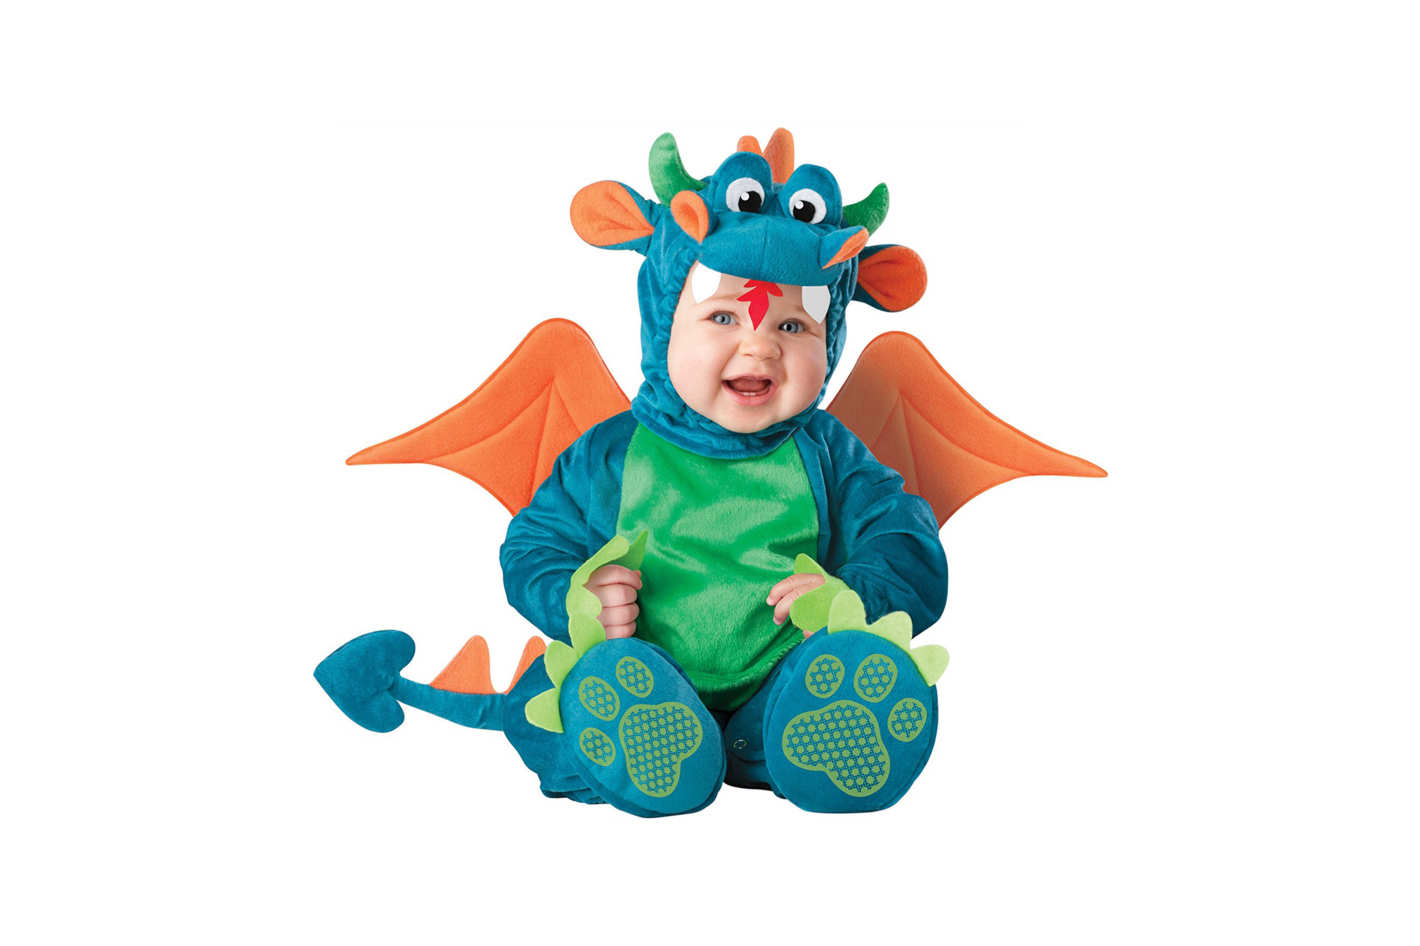 """The 15 Best Baby Halloween Costumes on Amazon, According to Hyperenthusiastic Reviewers"""